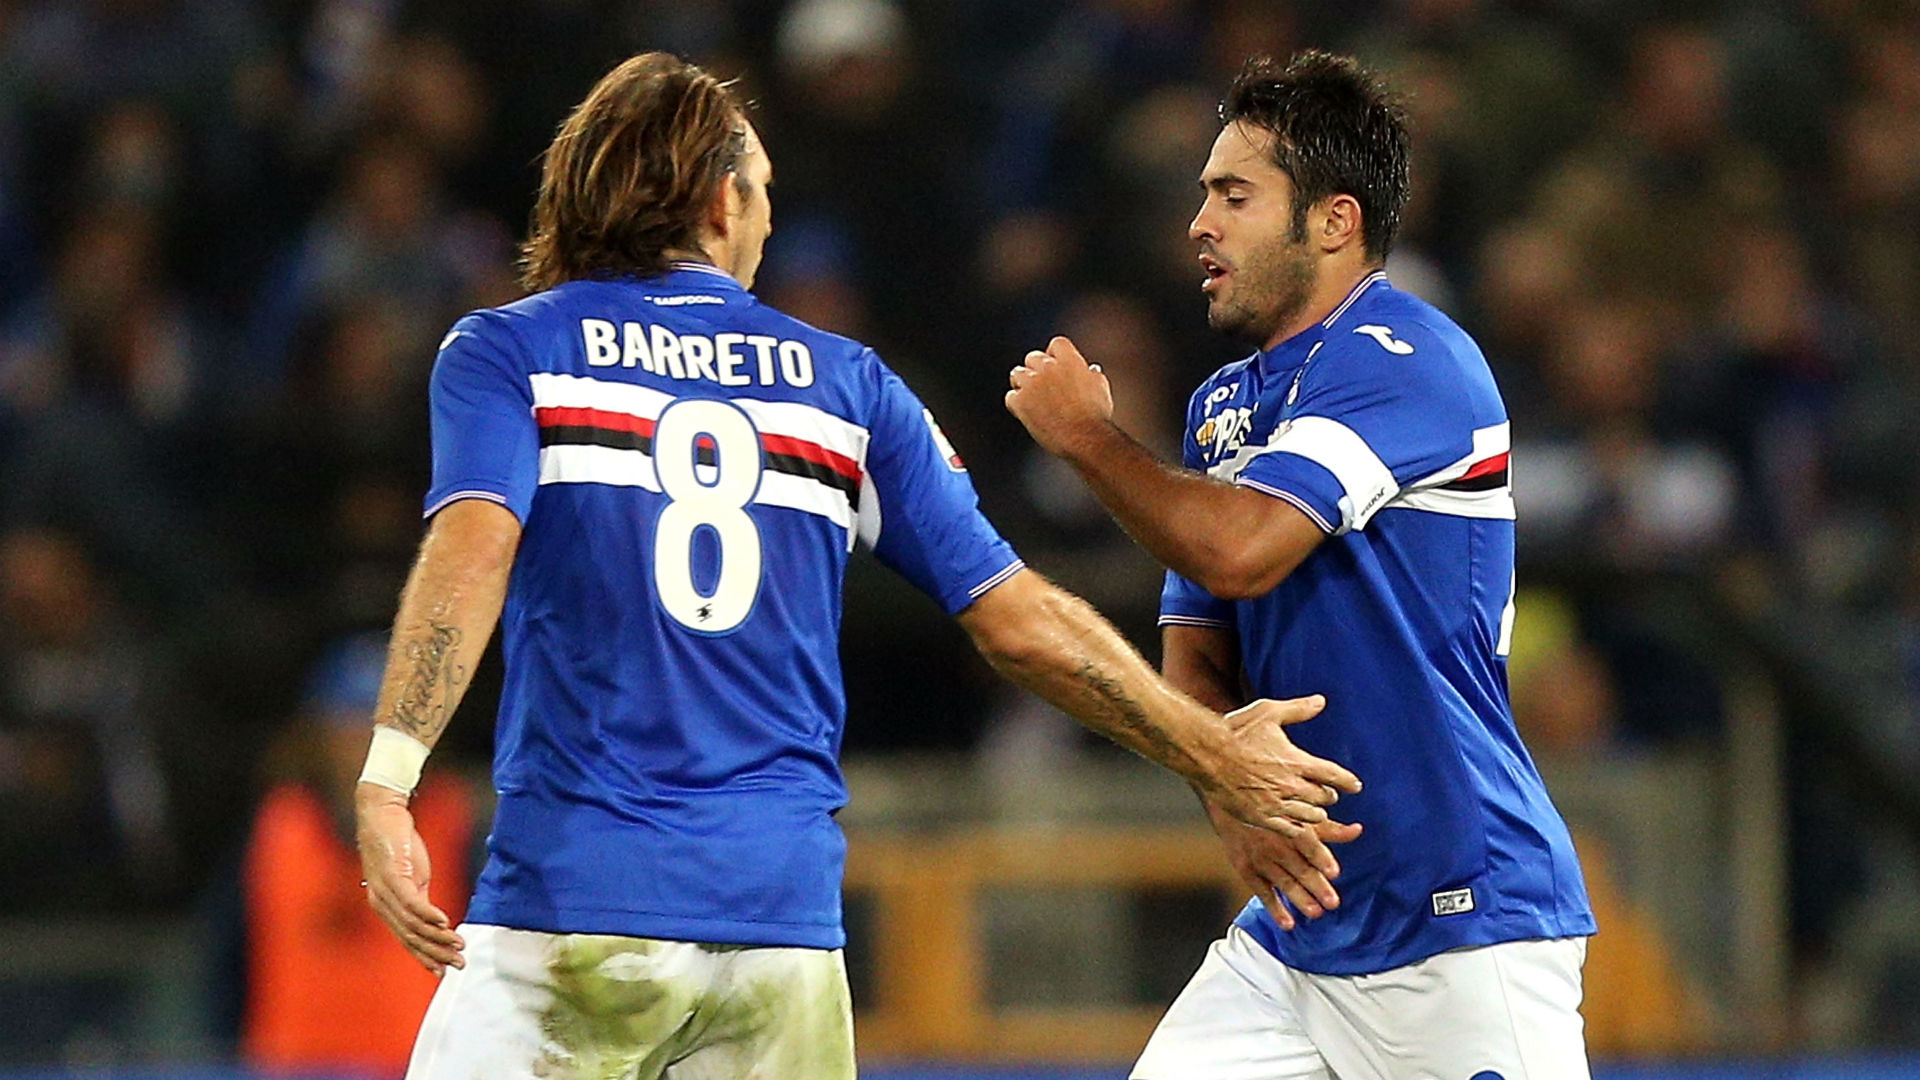 Video: Sampdoria vs Empoli